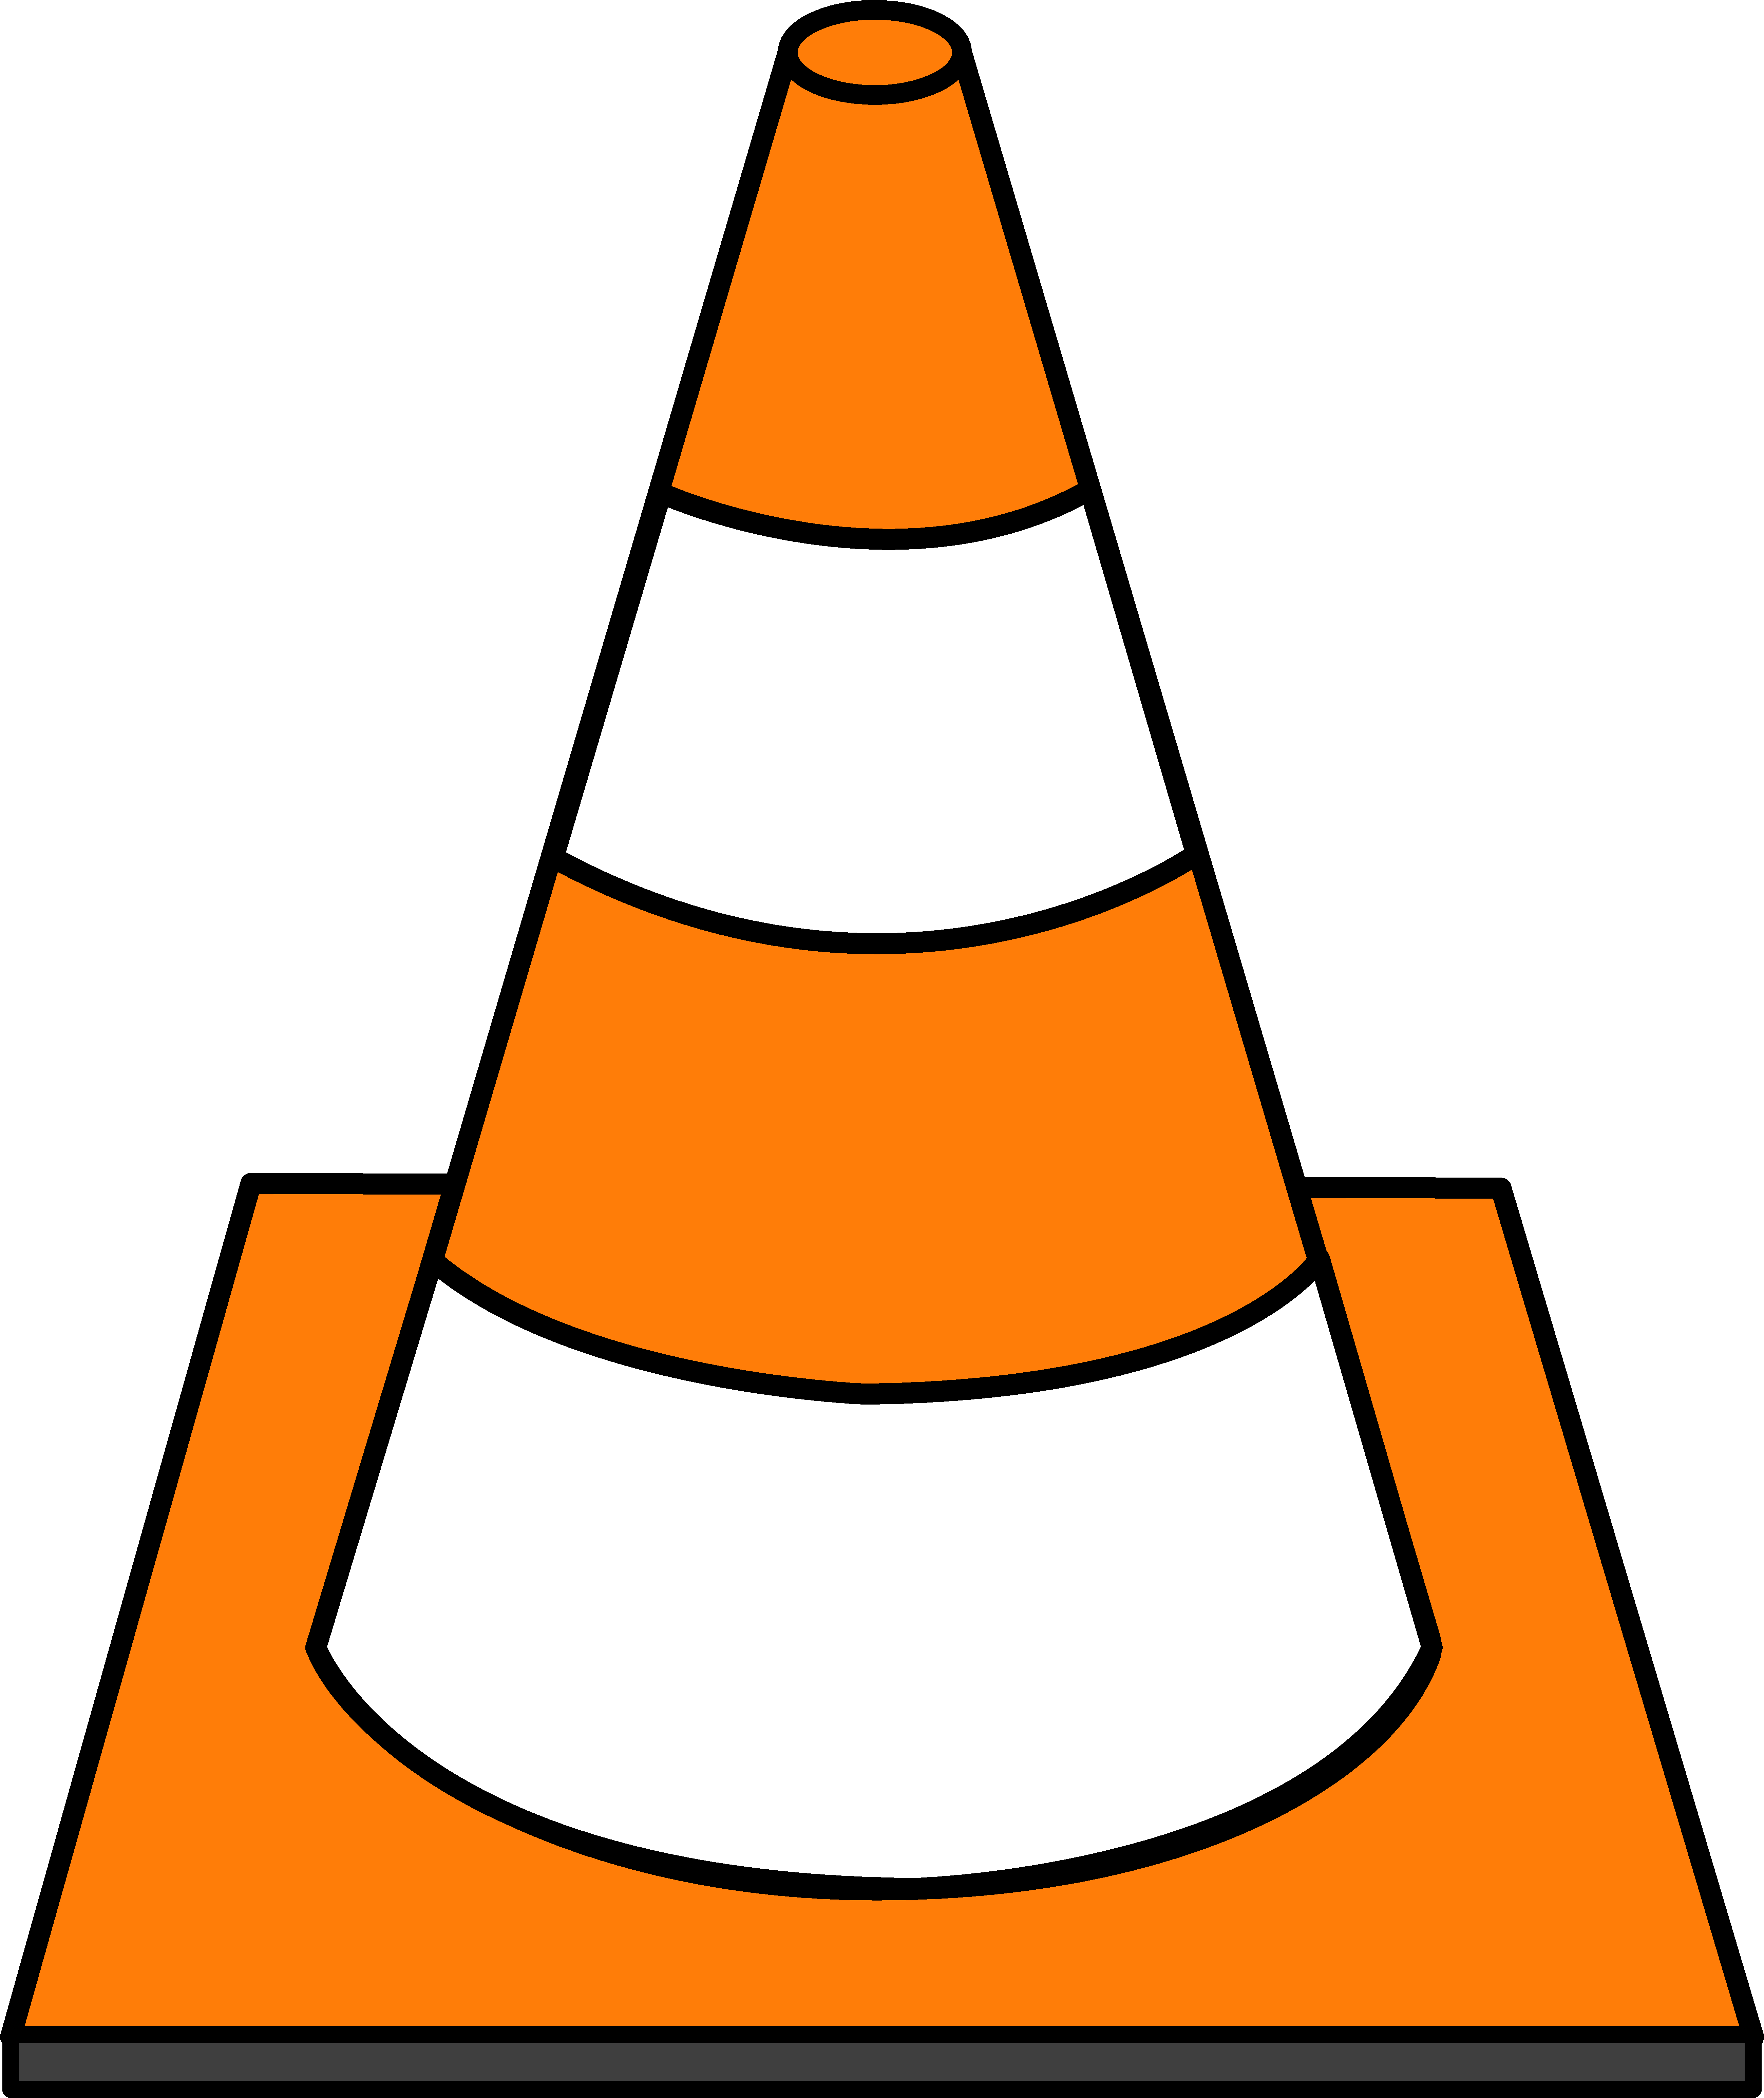 Images of Cone | 5199x6184